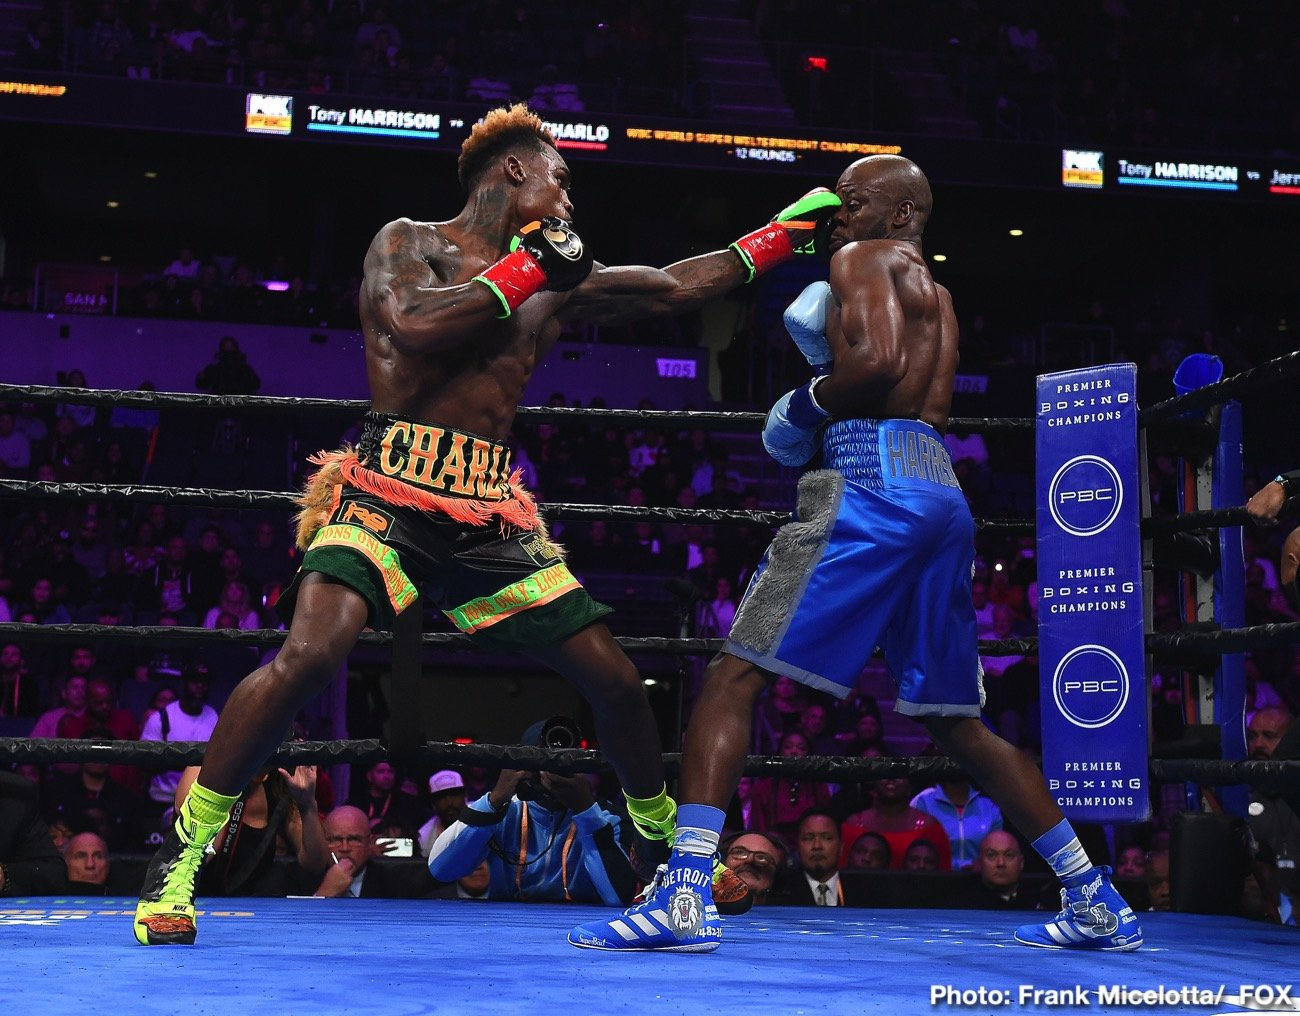 Tony Harrison - WBC junior middleweight champion Tony Harrison's chin betrayed him in the 11th round with Jermell Charlo (33-1, 17 KOs) stopping him in a come from behind victory in their rematch on Saturday night at the Toyota Arena in Ontario, California.